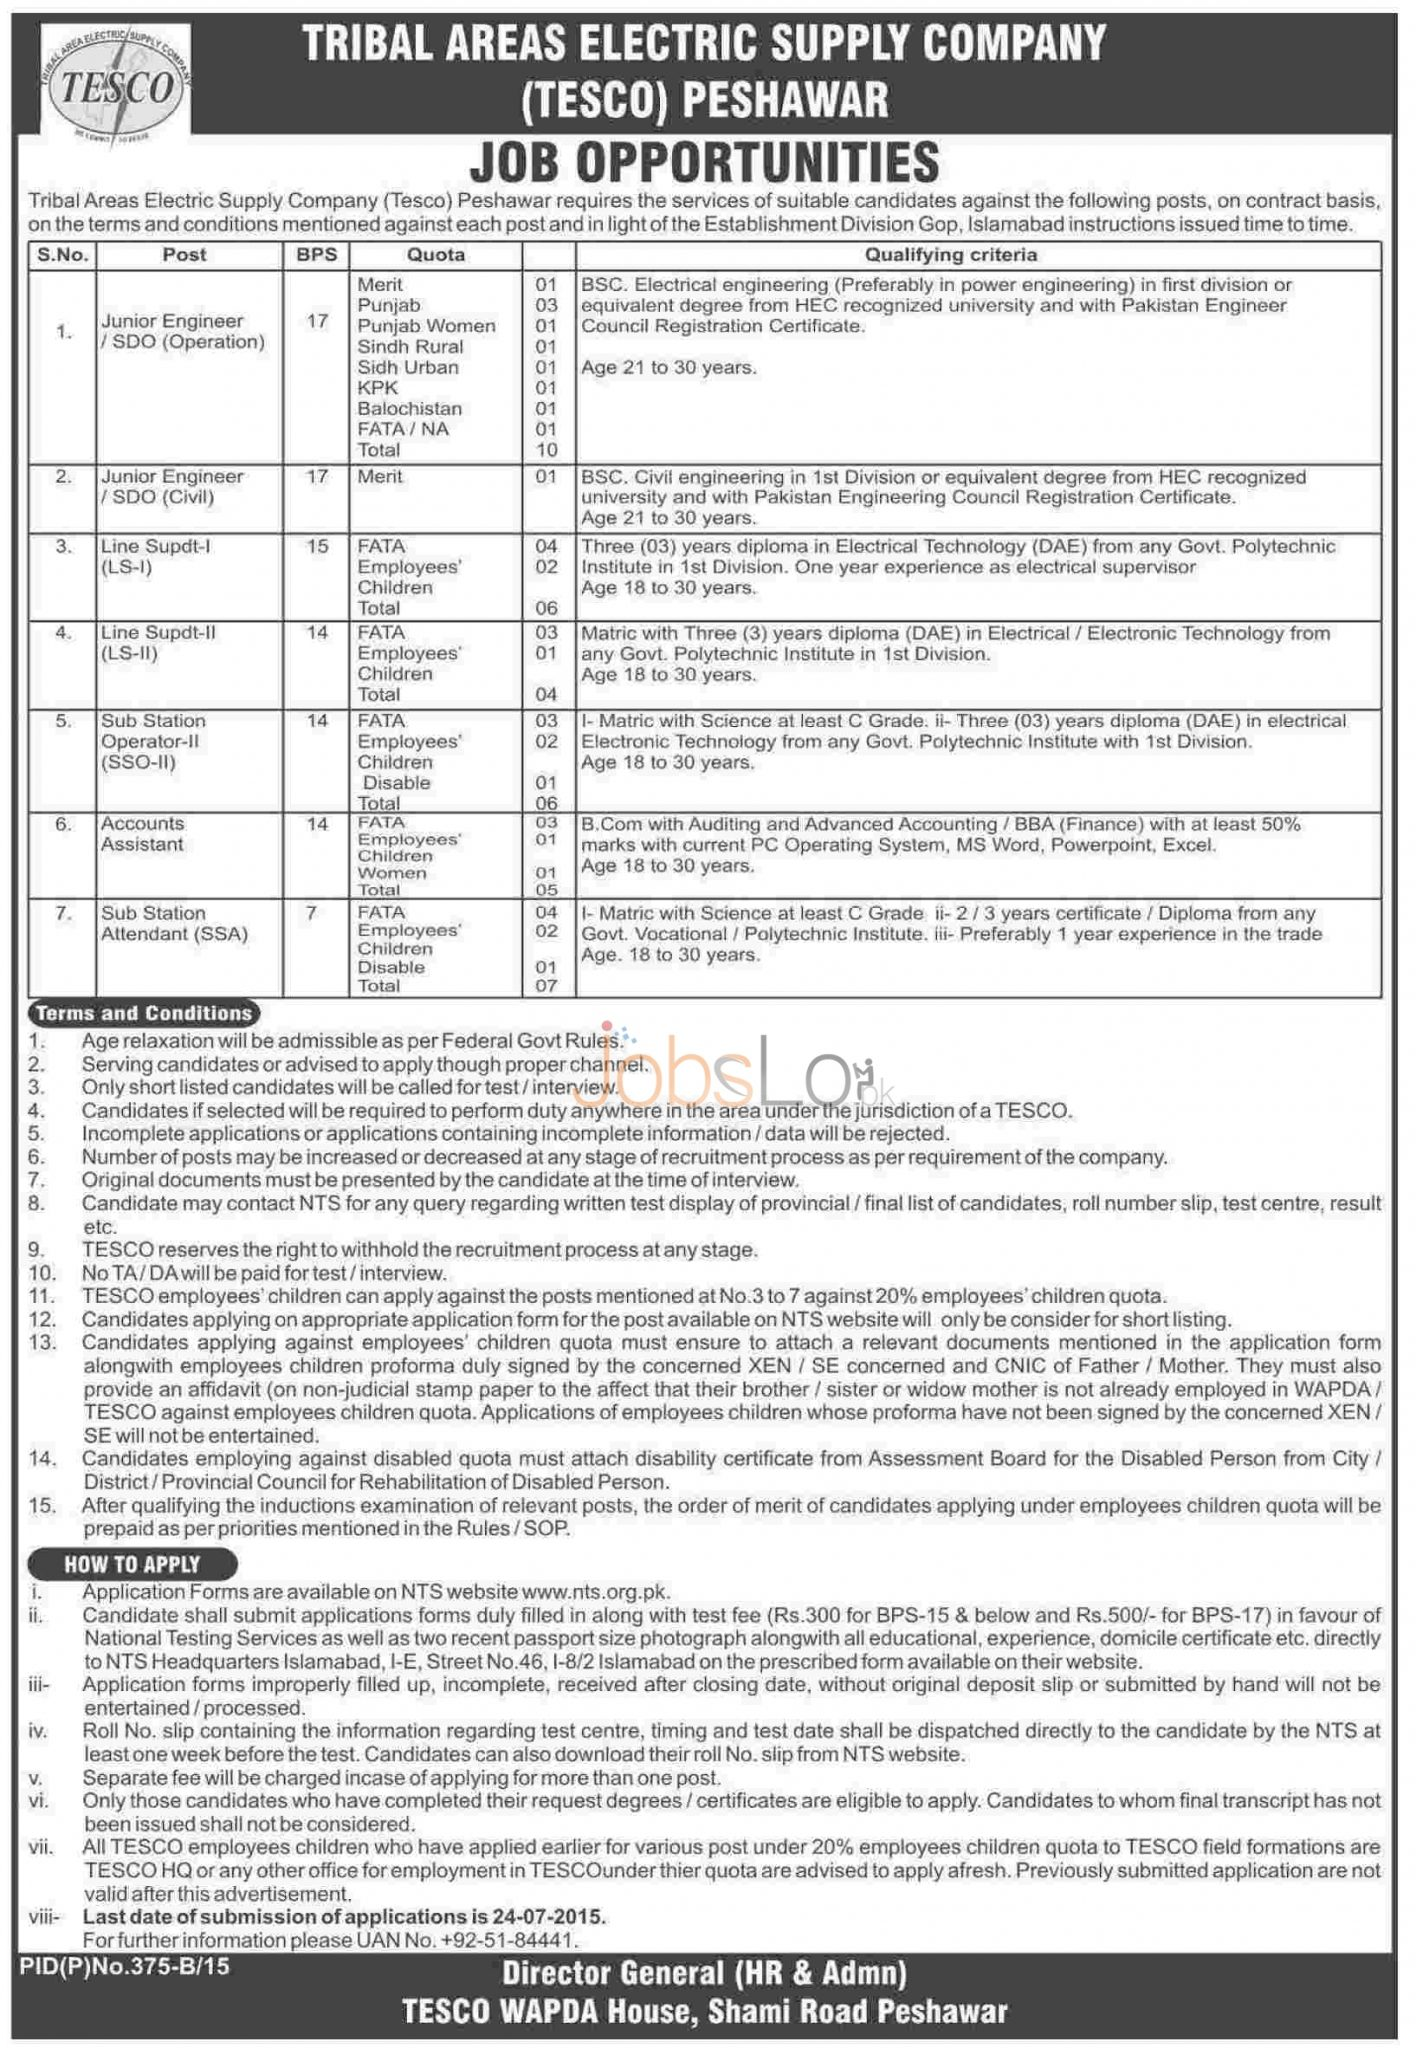 TESCO WAPDA Jobs